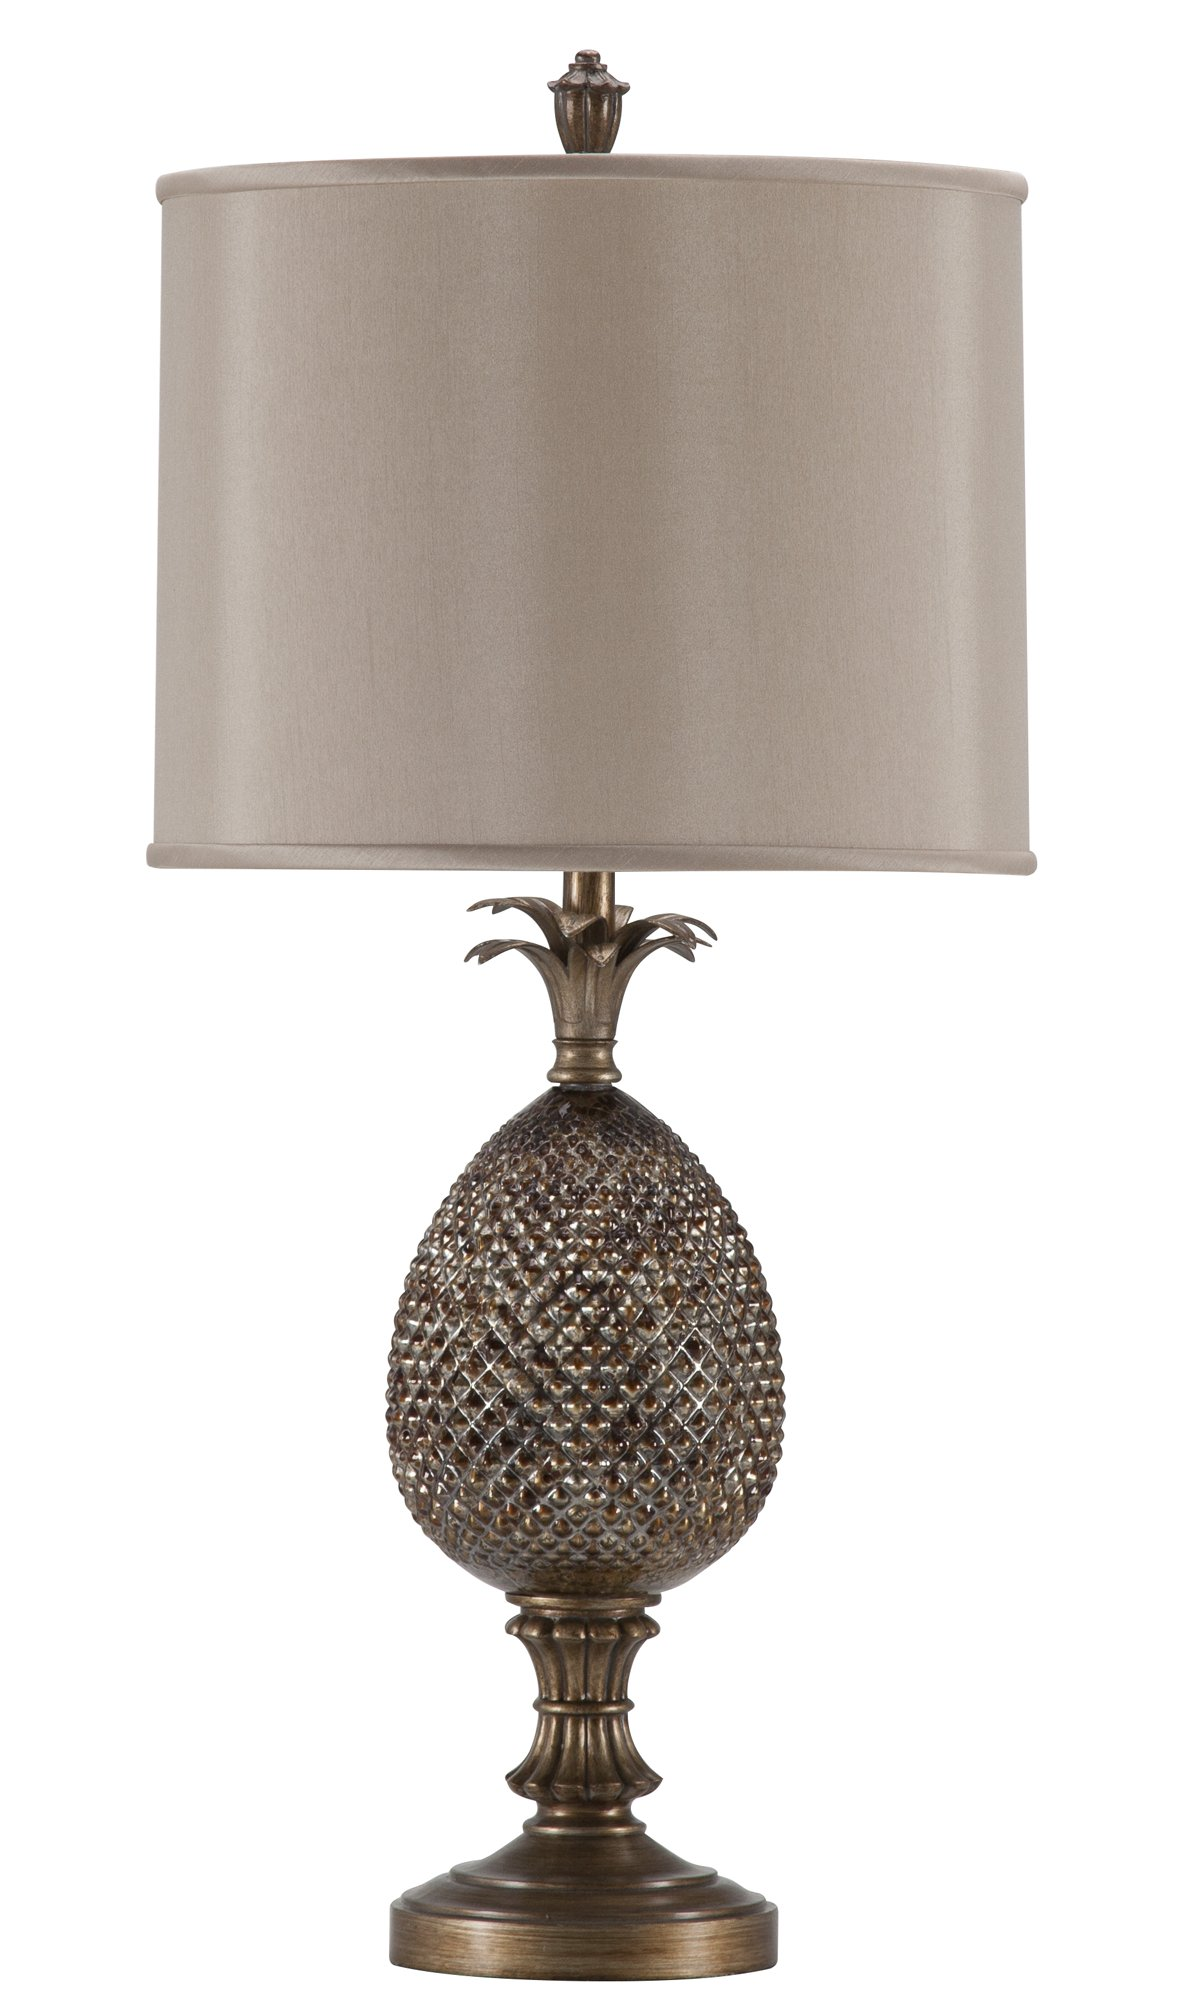 All glass dining room table - City Furniture Pineapple Bronze Table Lamp